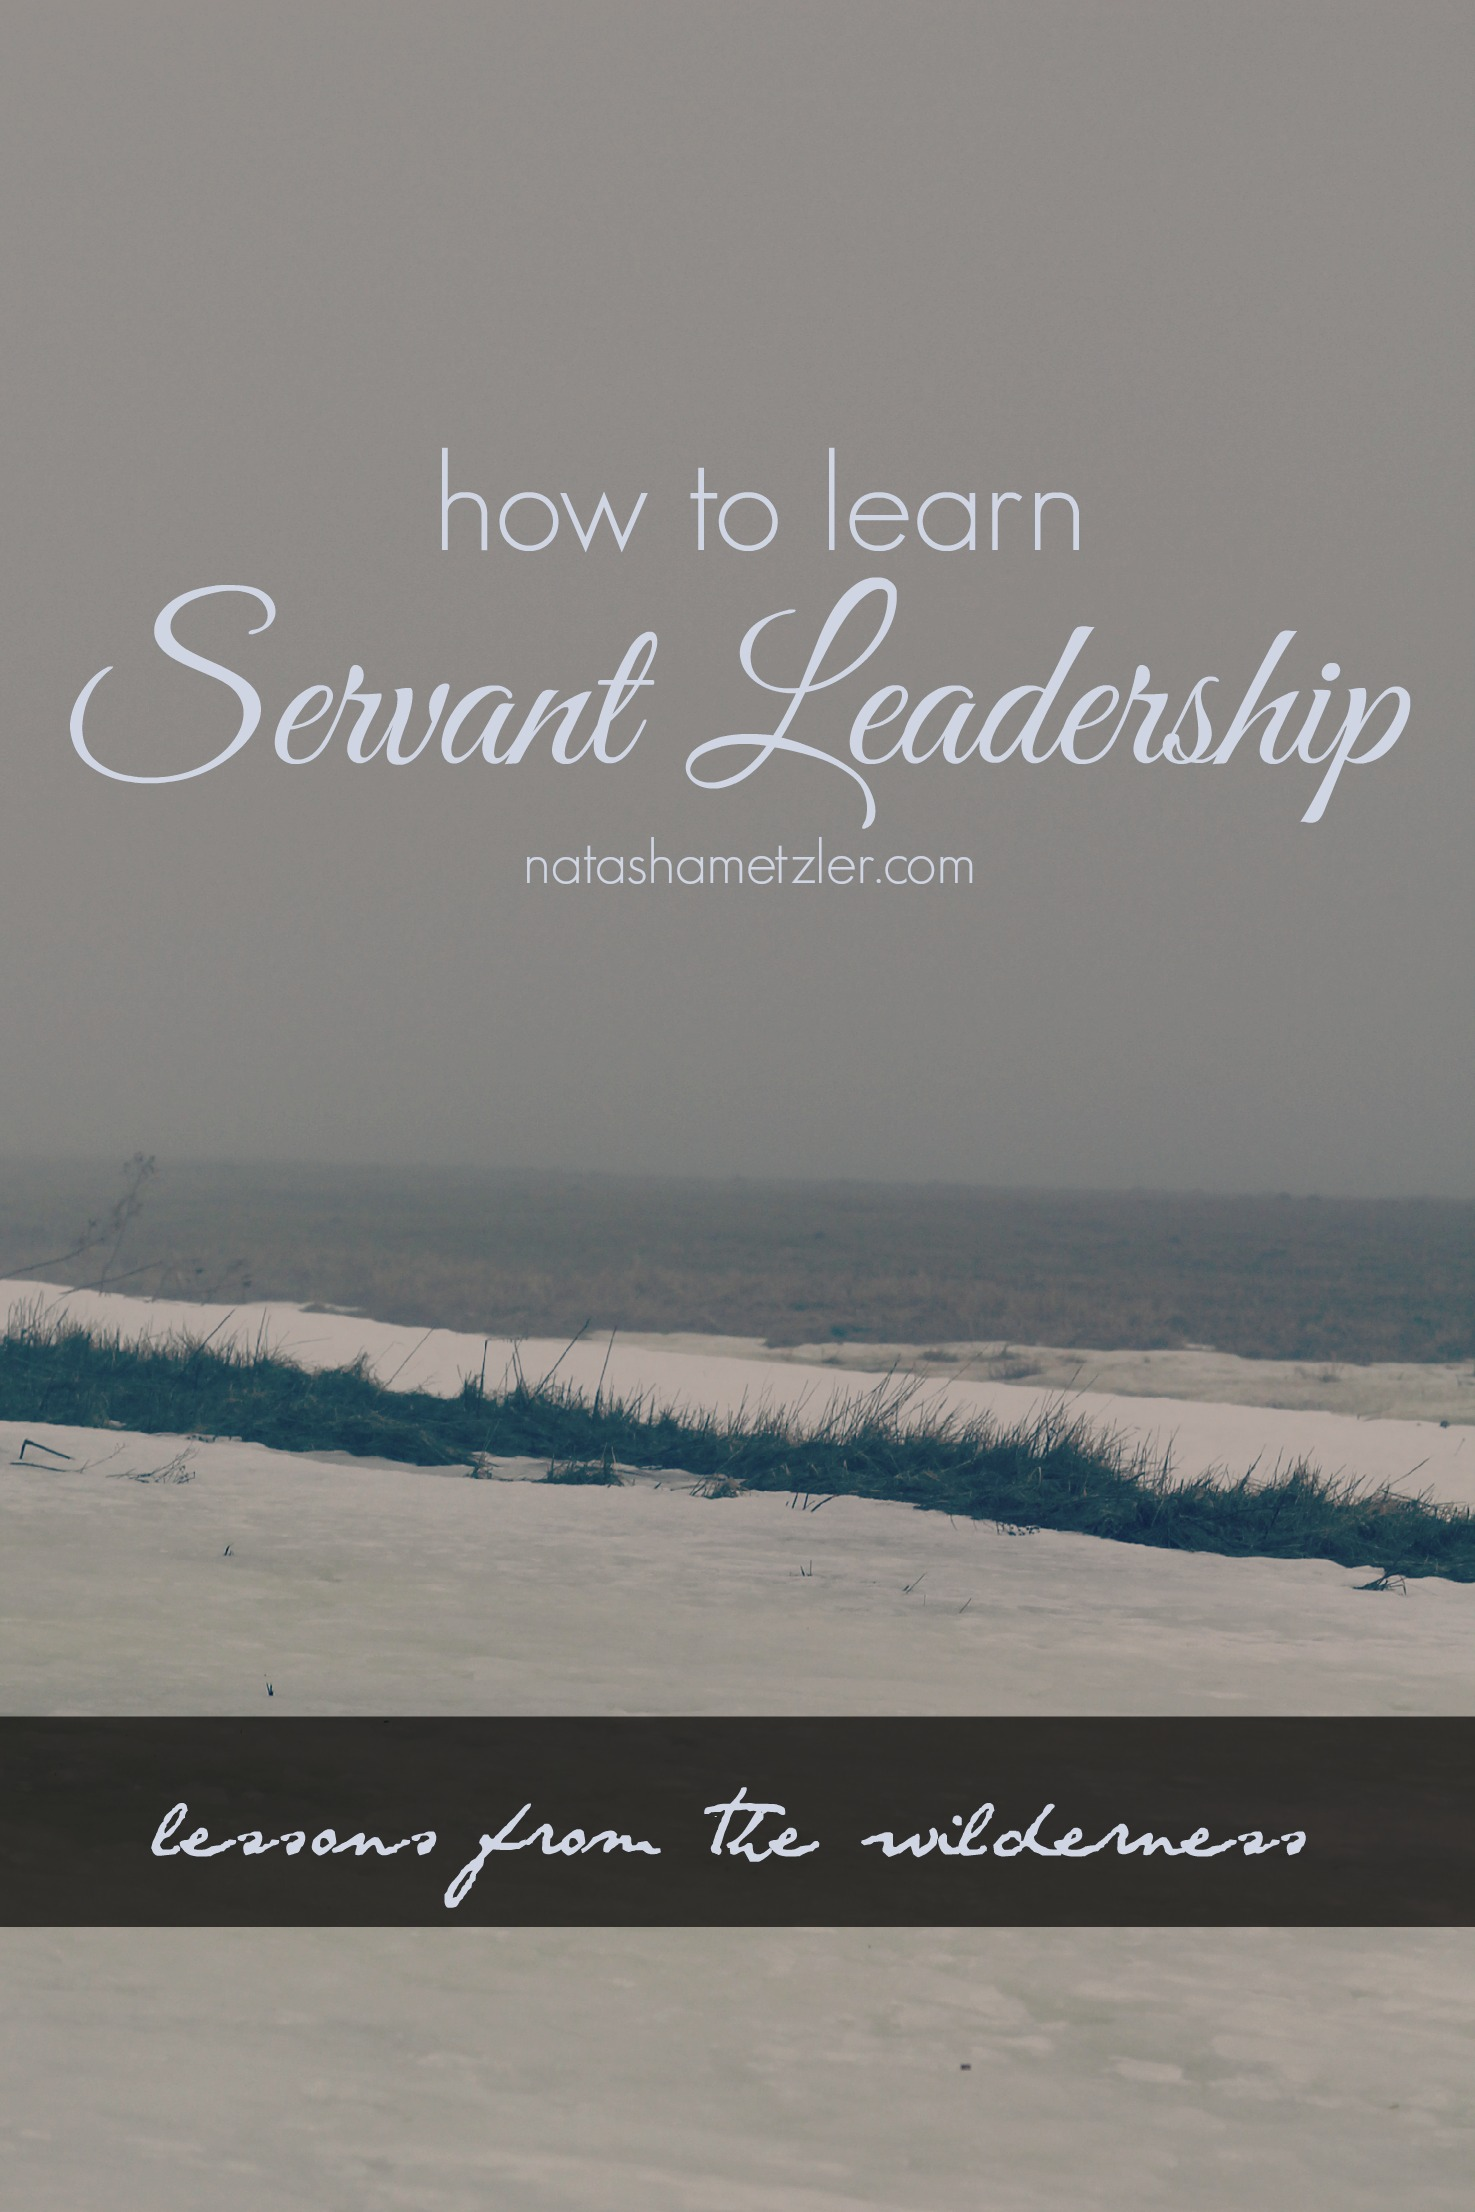 How to Learn Servant Leadership